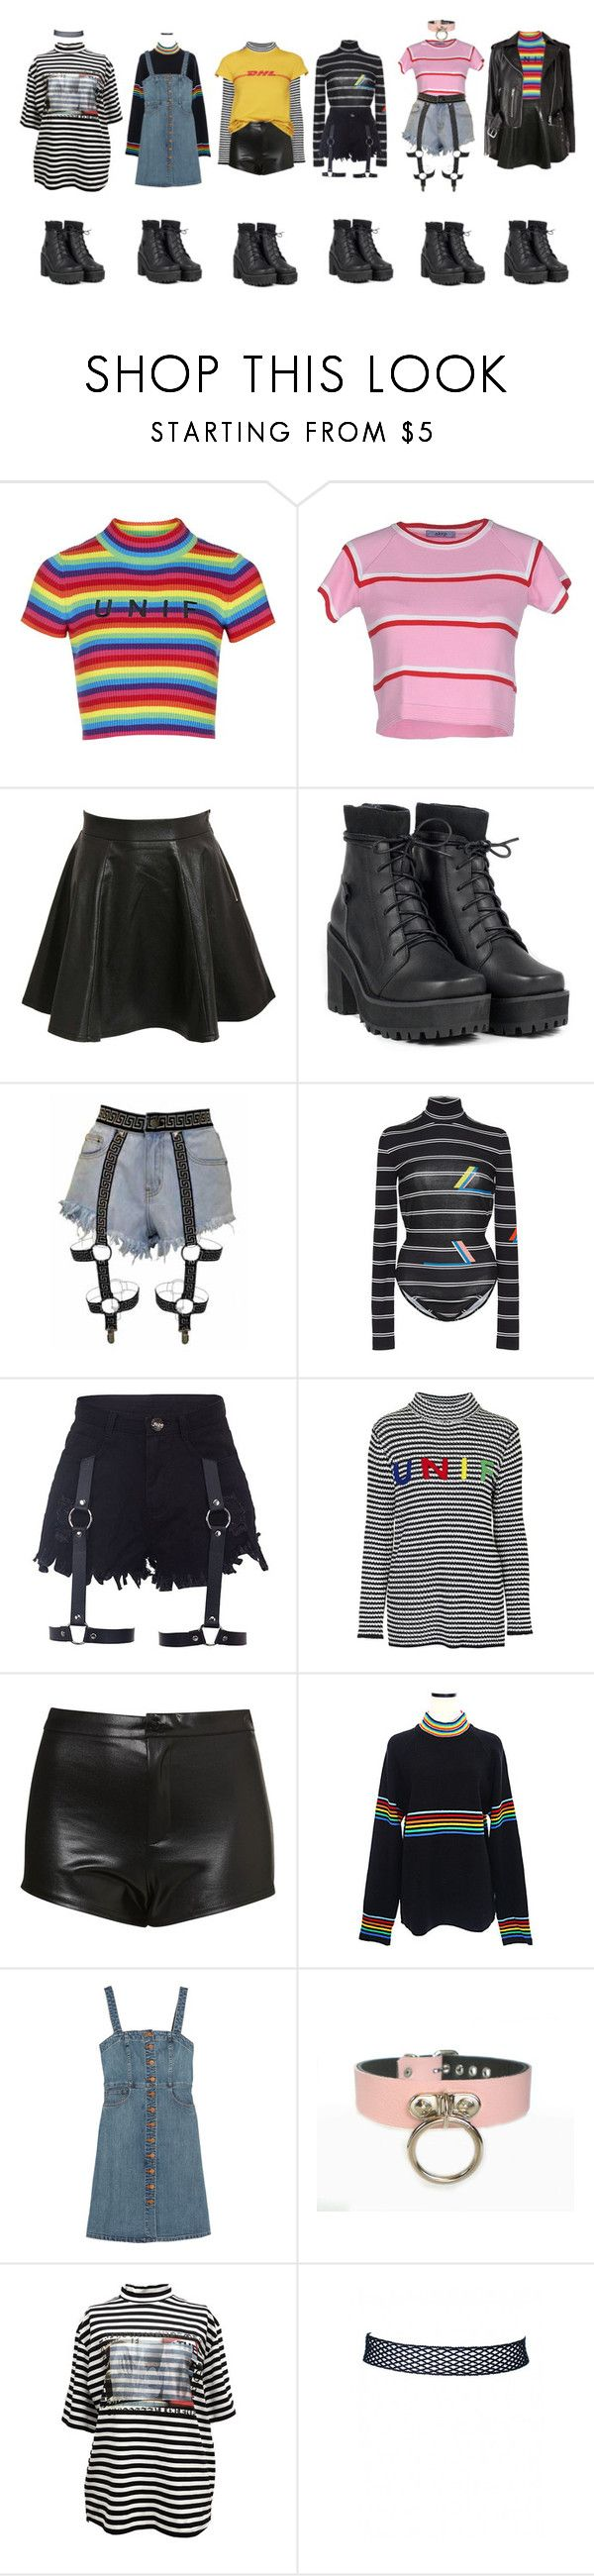 """""""DC-PARADISE"""" by yonce4park ❤ liked on Polyvore featuring Topshop, Akep, Pilot, UNIF, Preen, Madewell and M.Y.O.B."""